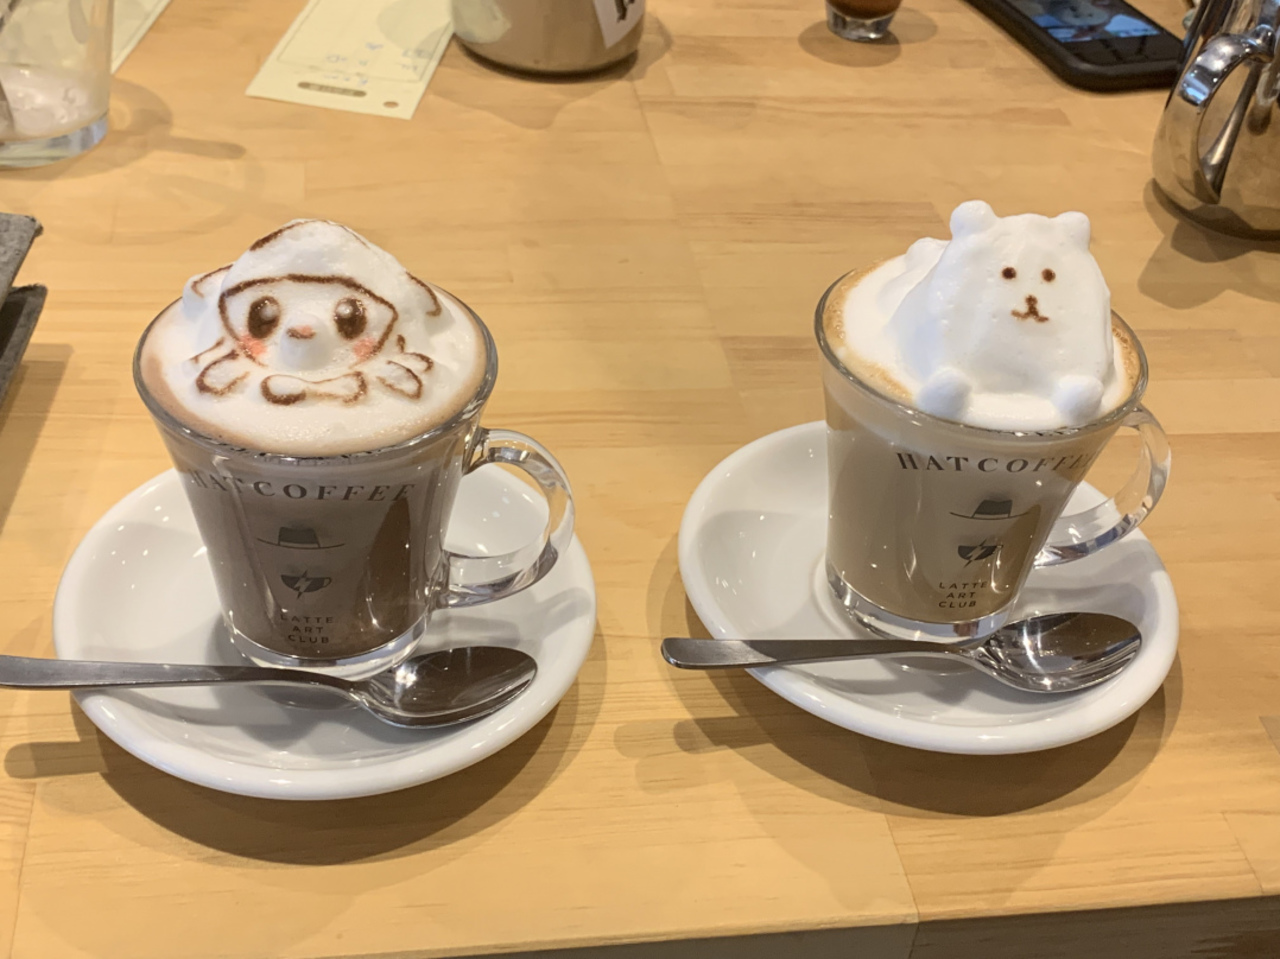 19.6.15 OPEN!ラテアートをオーダーメイドで作成可能! 台東区 「HAT COFFEE」